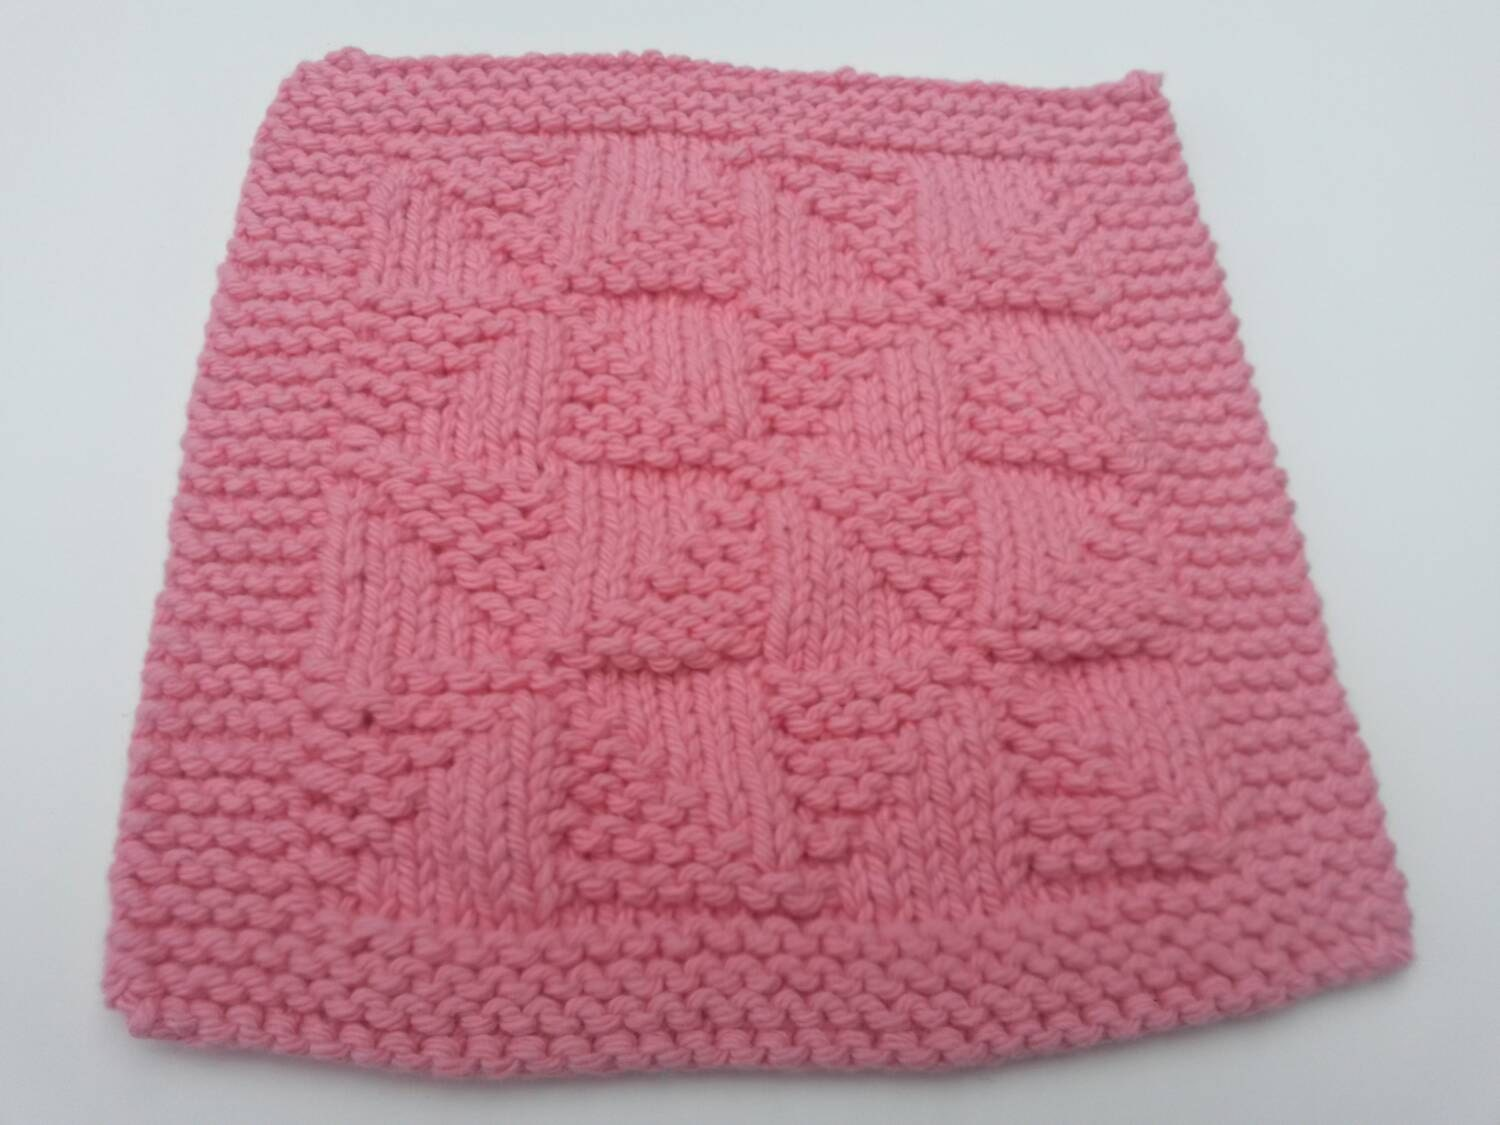 Knitted Quilt Block Patterns : Knit dishcloth pinwheel quilt strawberry pink